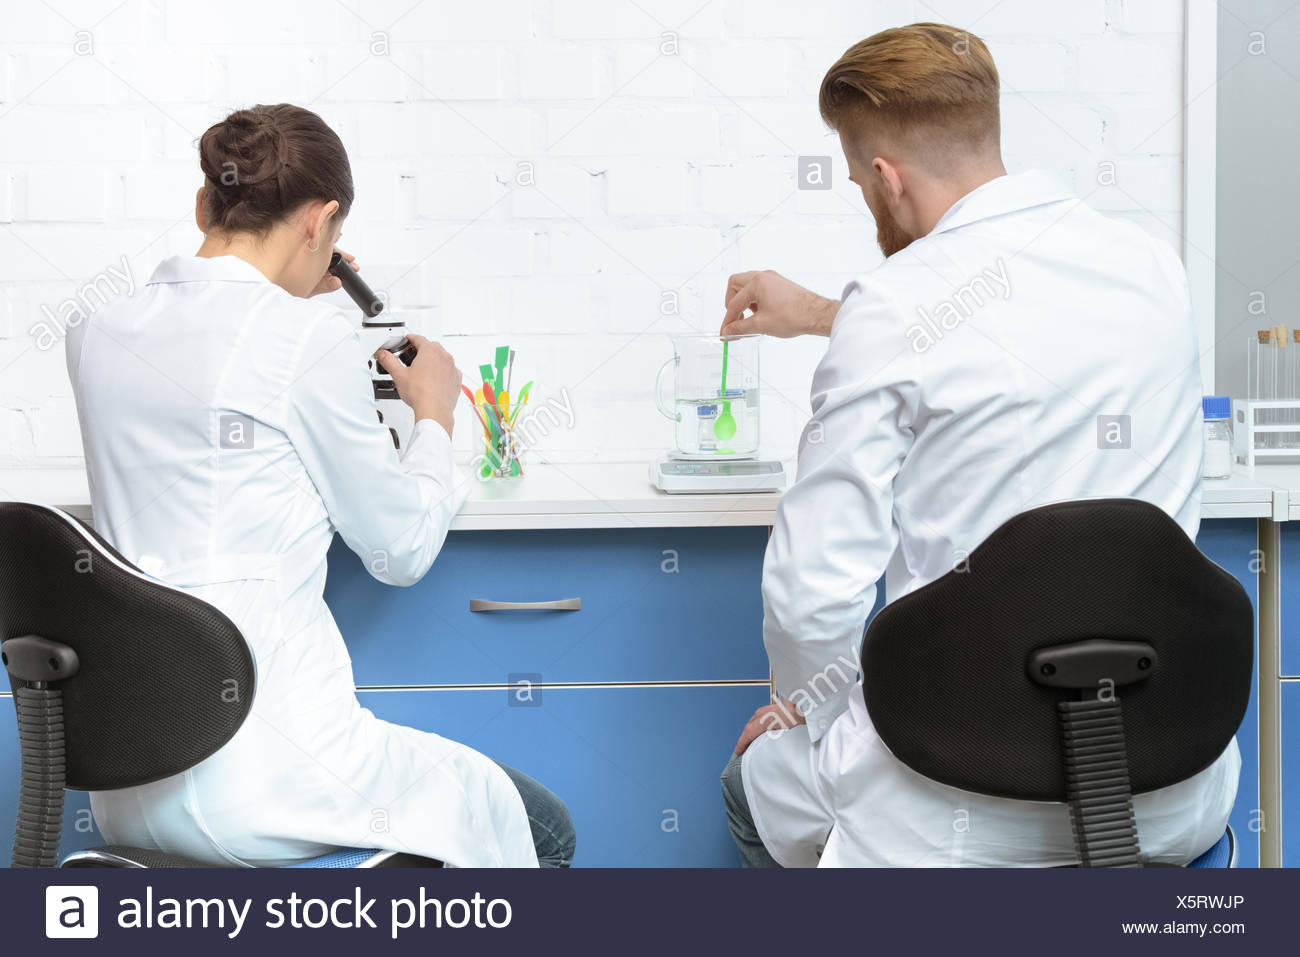 back view of scientists working with chemicals in lab - Stock Image